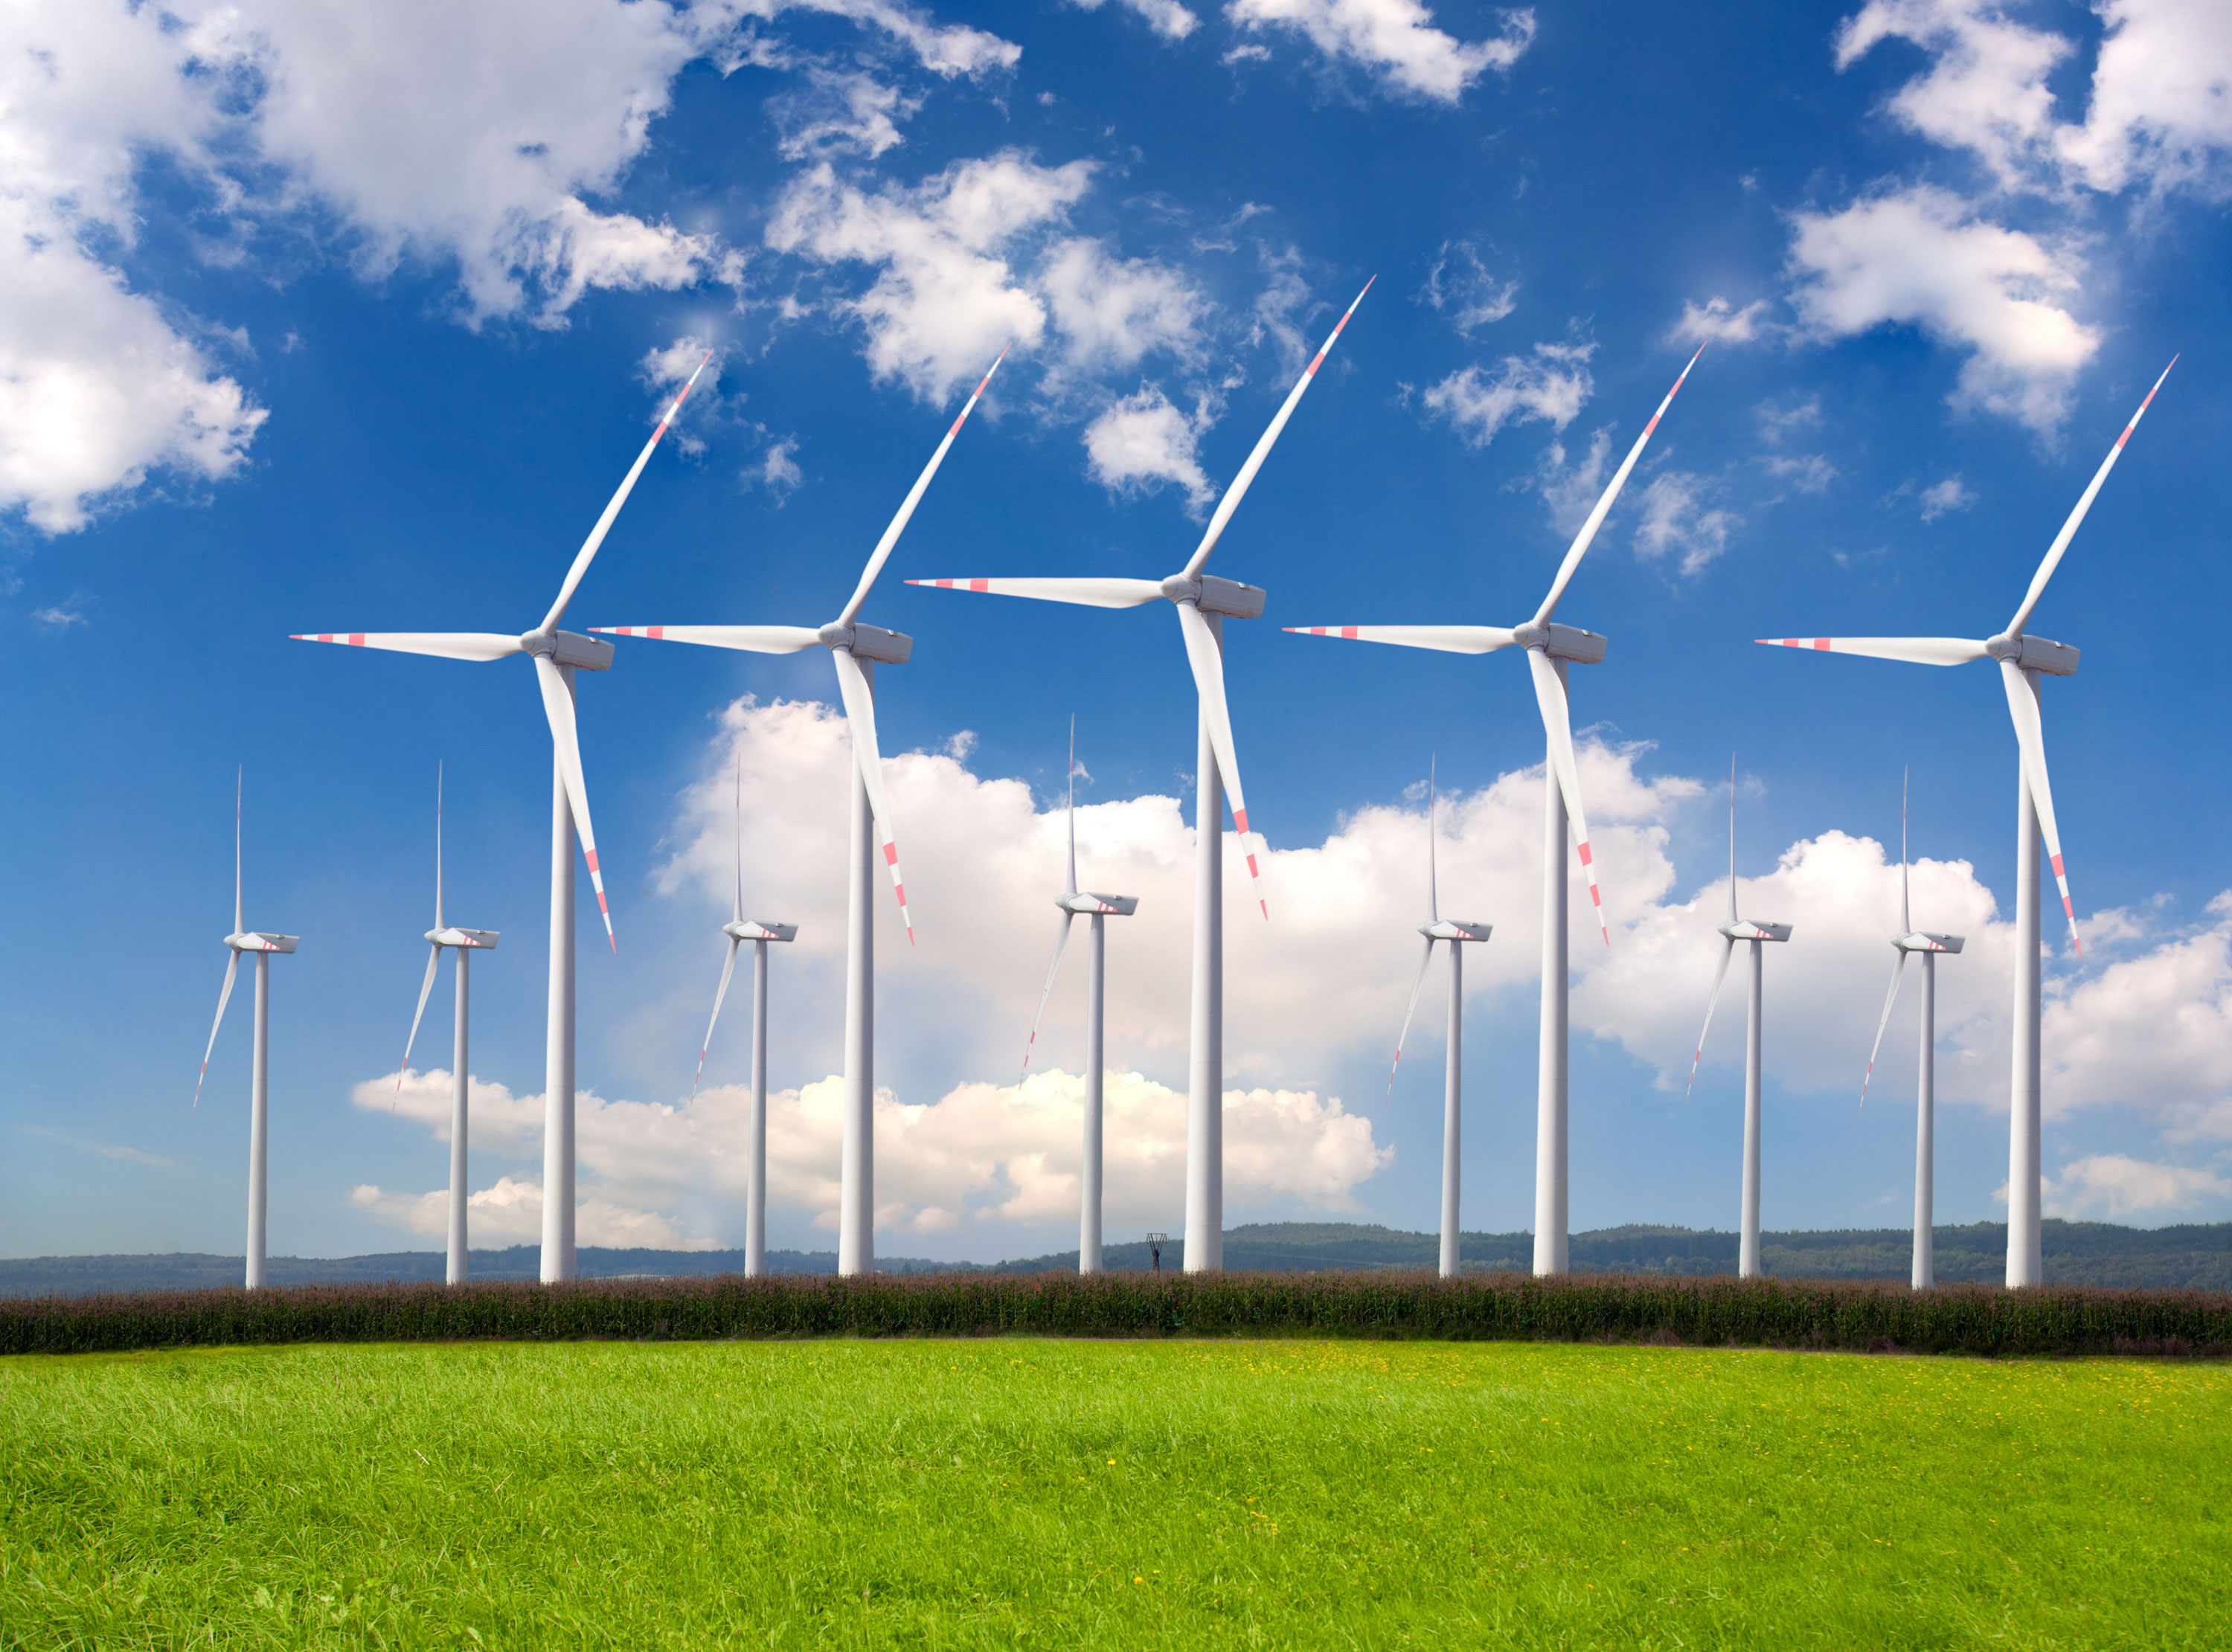 Long Lived Clean Power Wind Turbines Last 25 Years Study